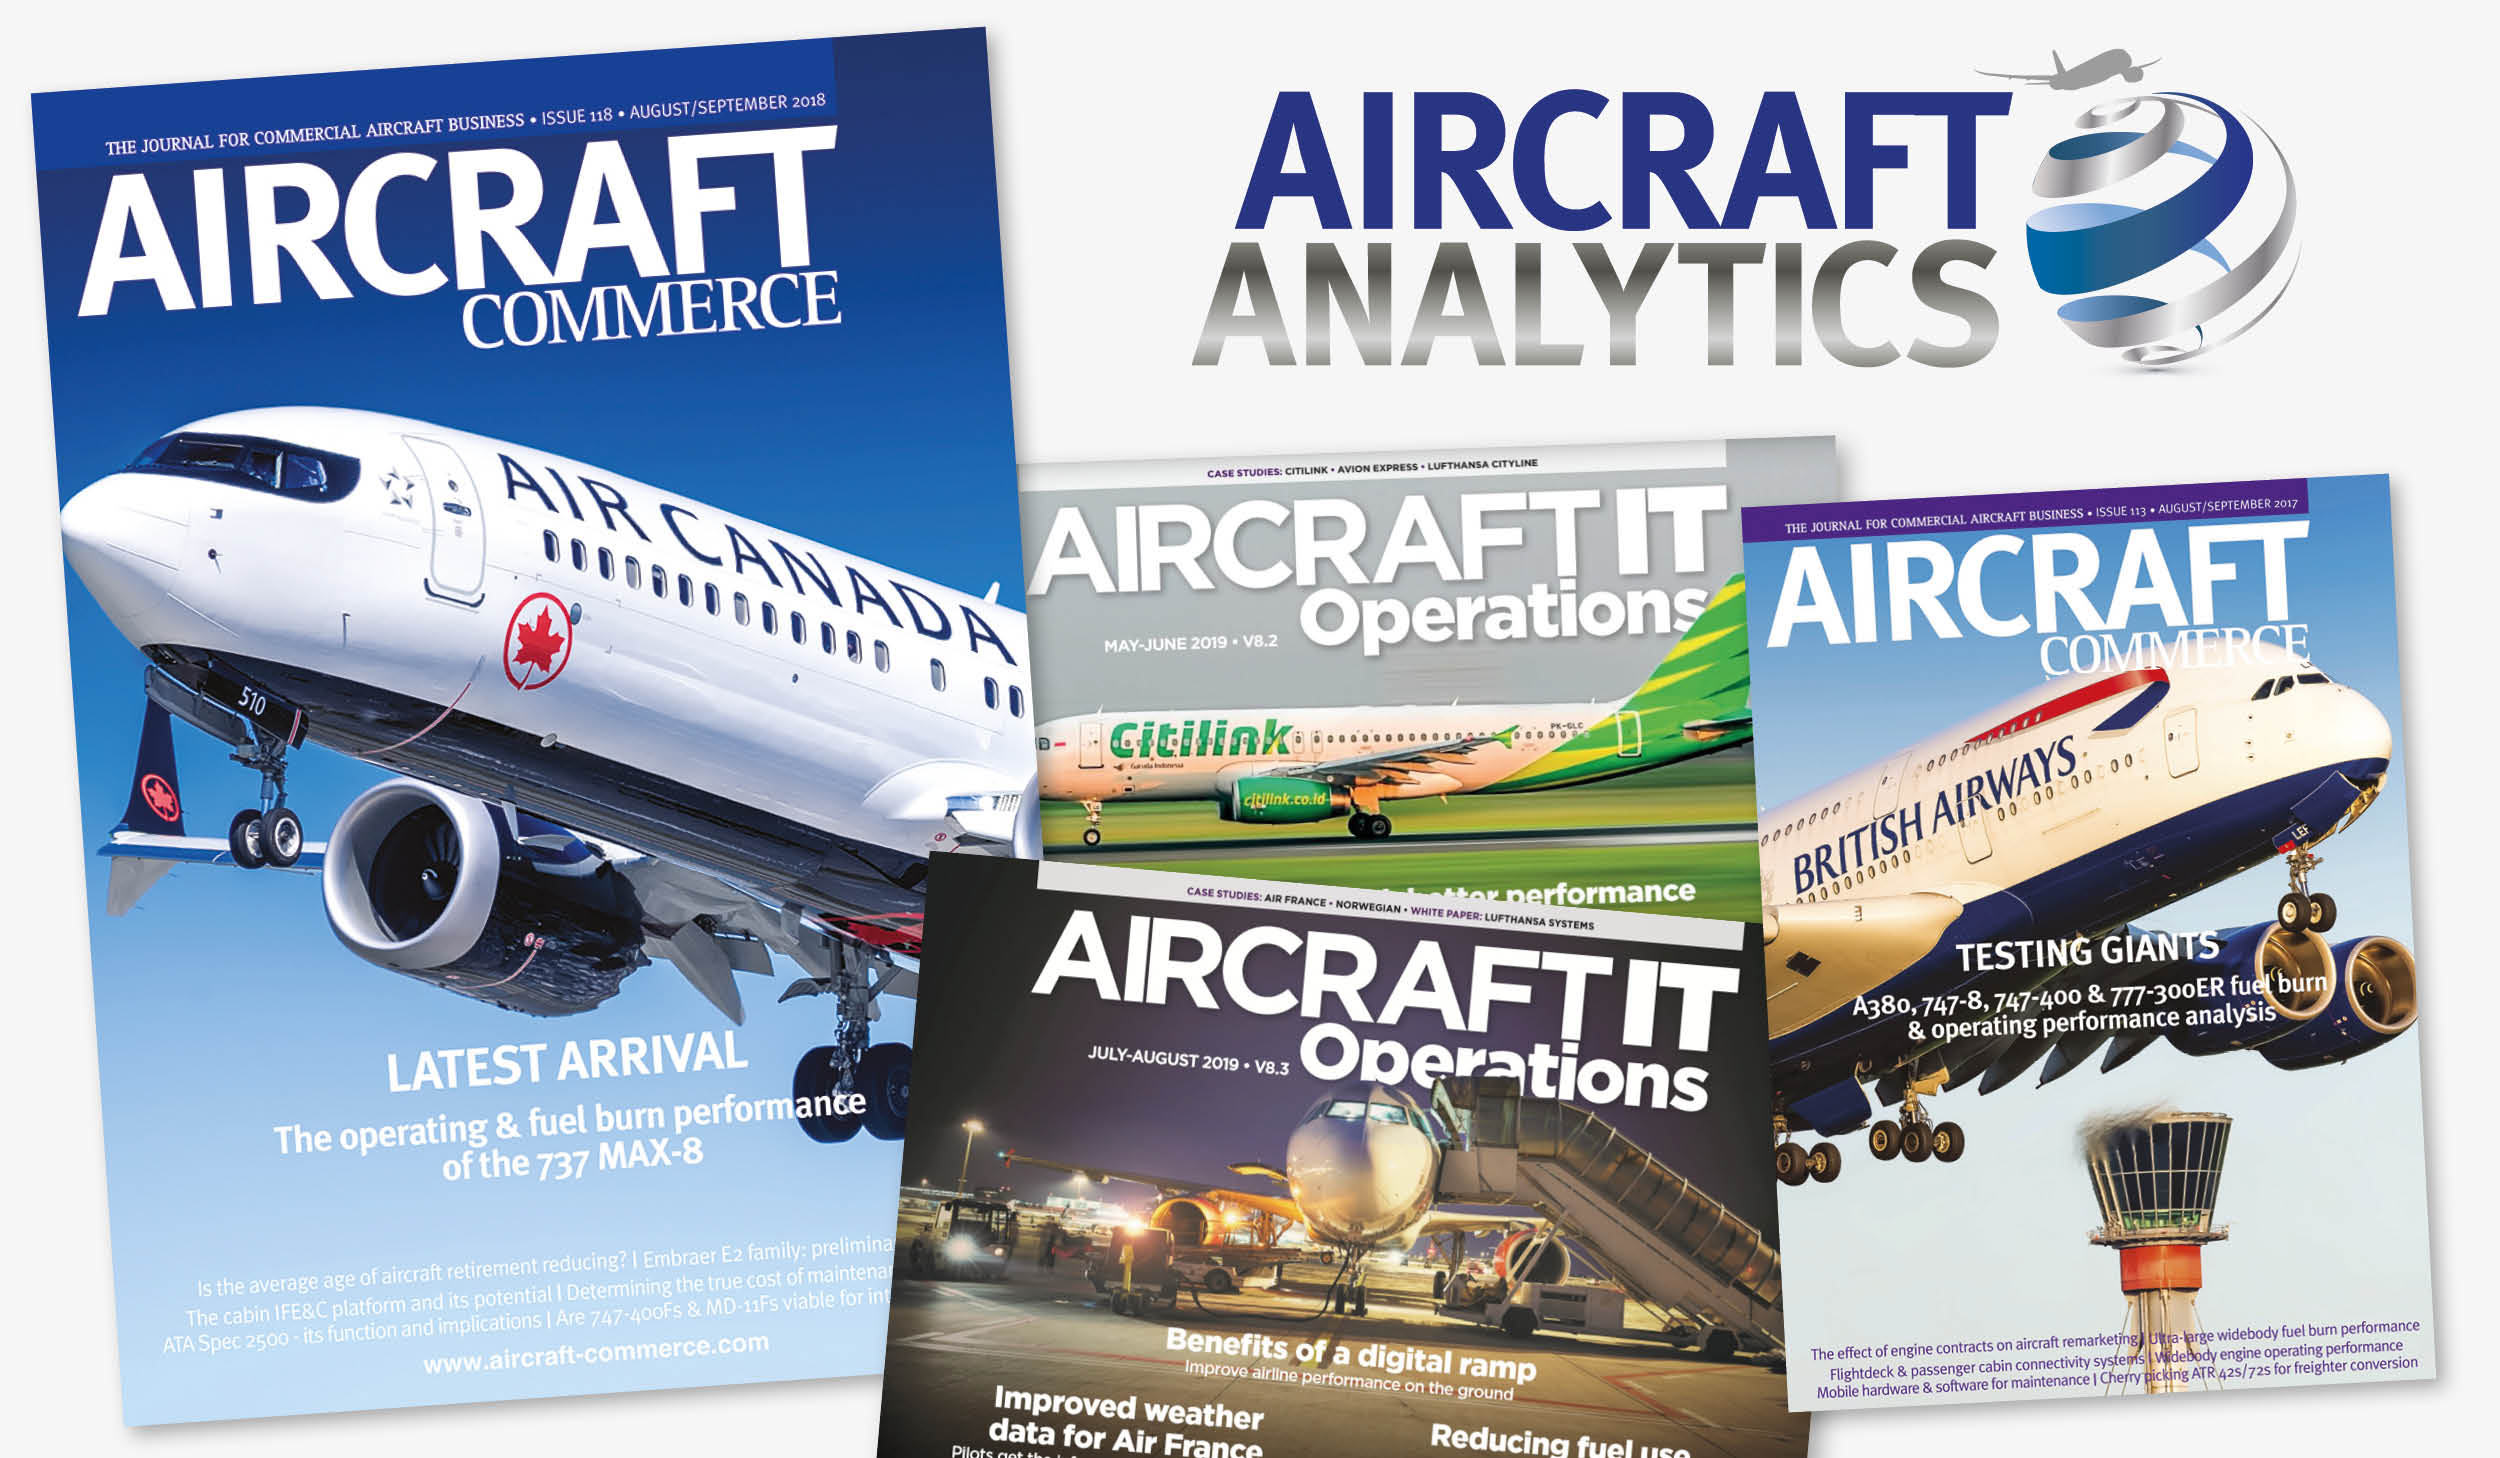 Aircraft Commerce and Aircraft IT launch Aircraft Analytics, a powerful new subscription-based digital resource for the industry